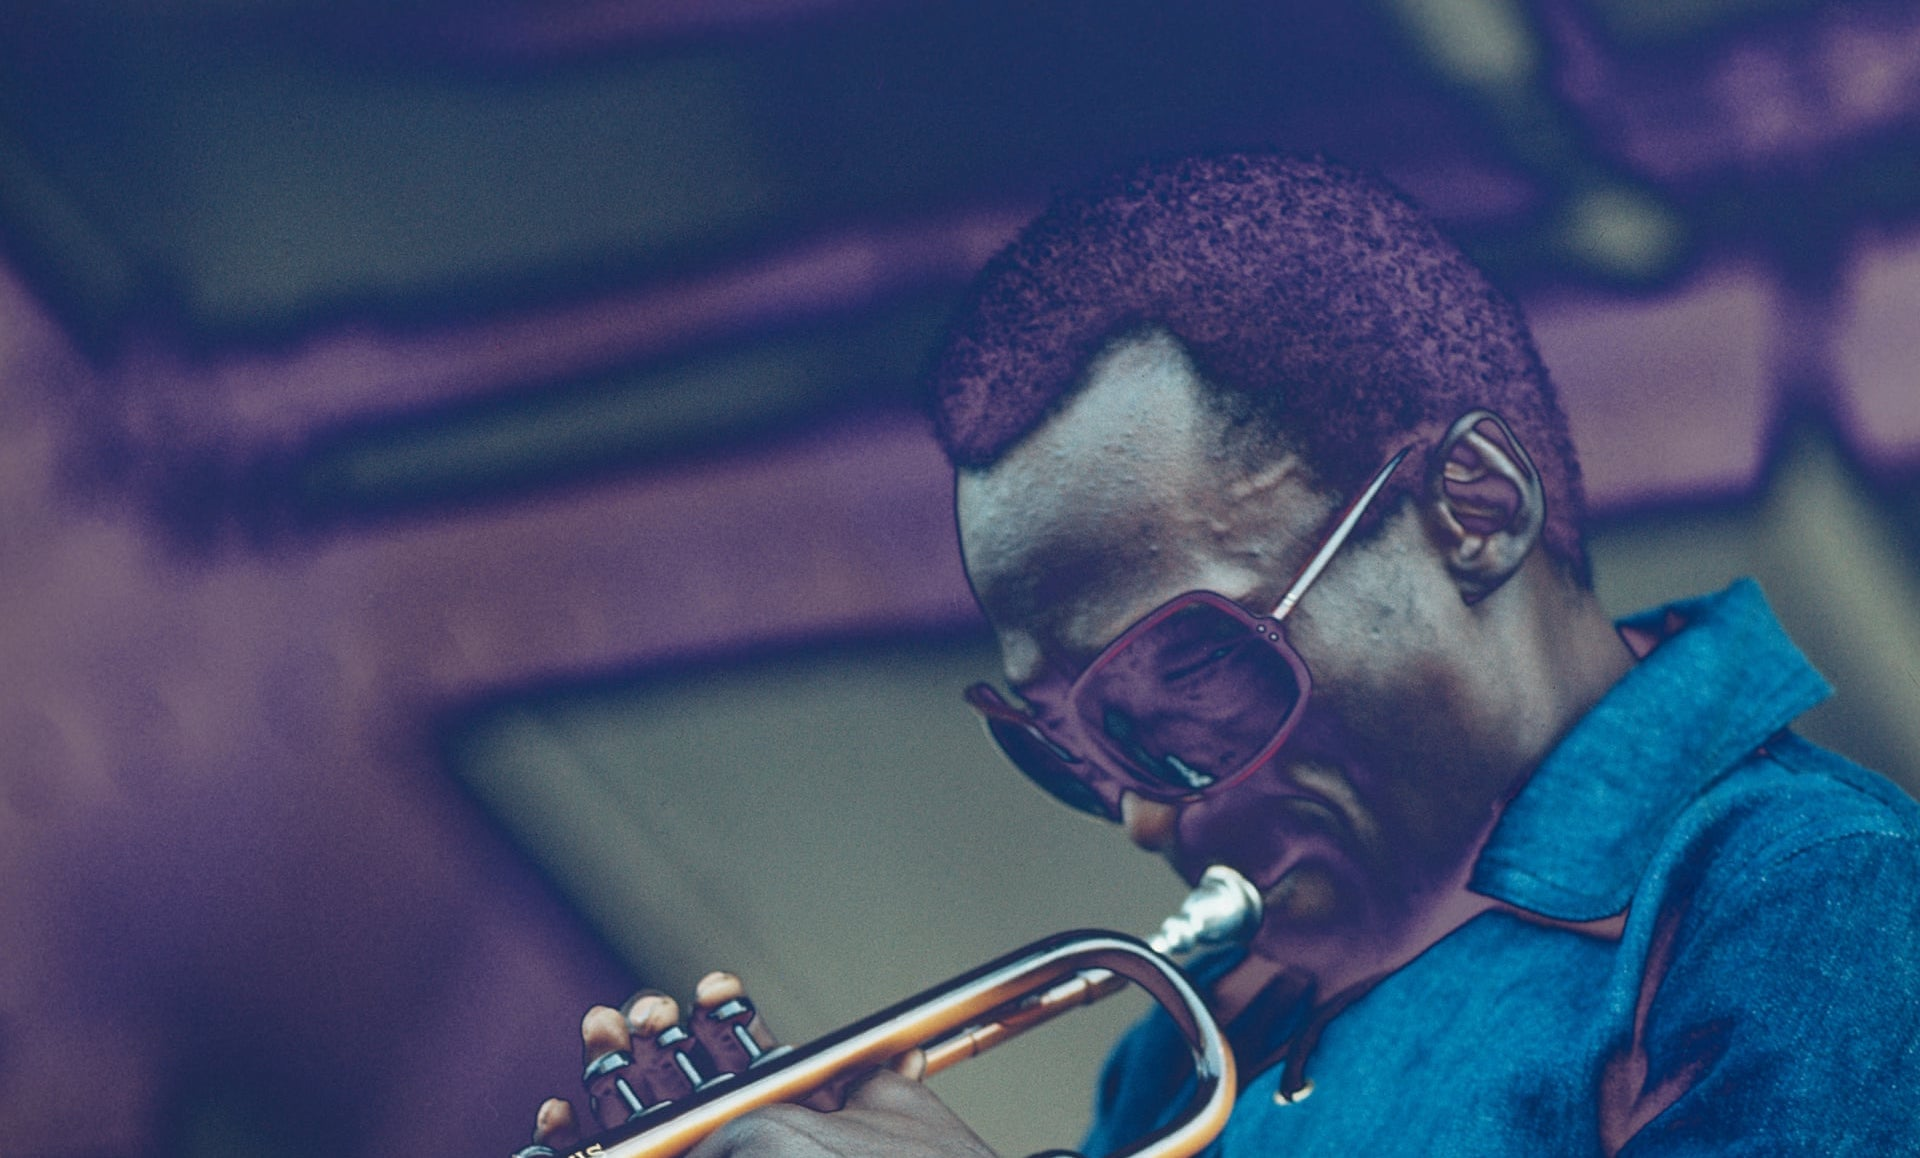 Miles Davis, African American Music, KOLUMN Magazine, KOLUMN, KINDR'D Magazine, KINDR'D, Willoughby Avenue, Wriit,